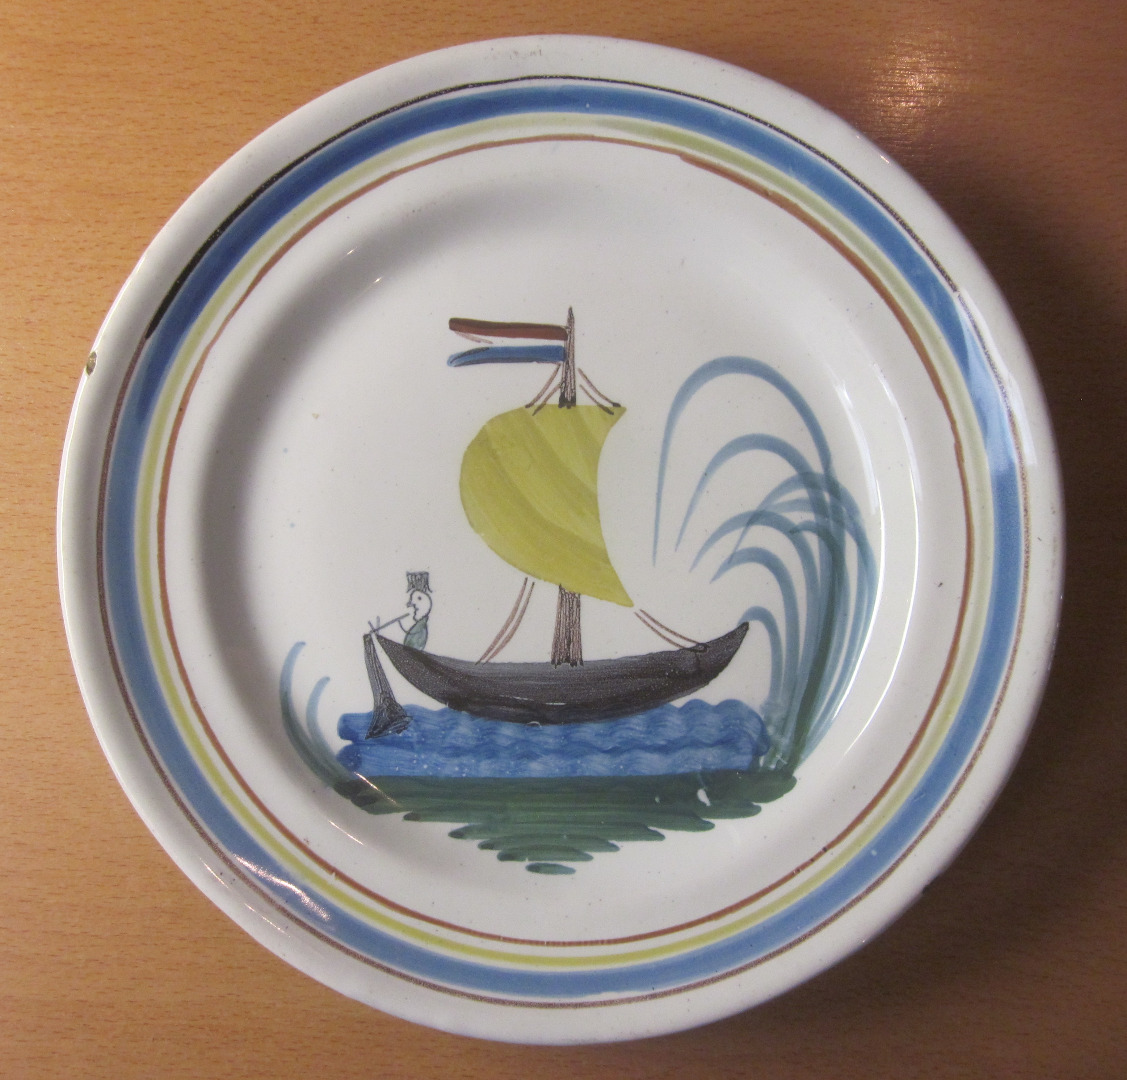 NEVERS FAIENCE PLATE